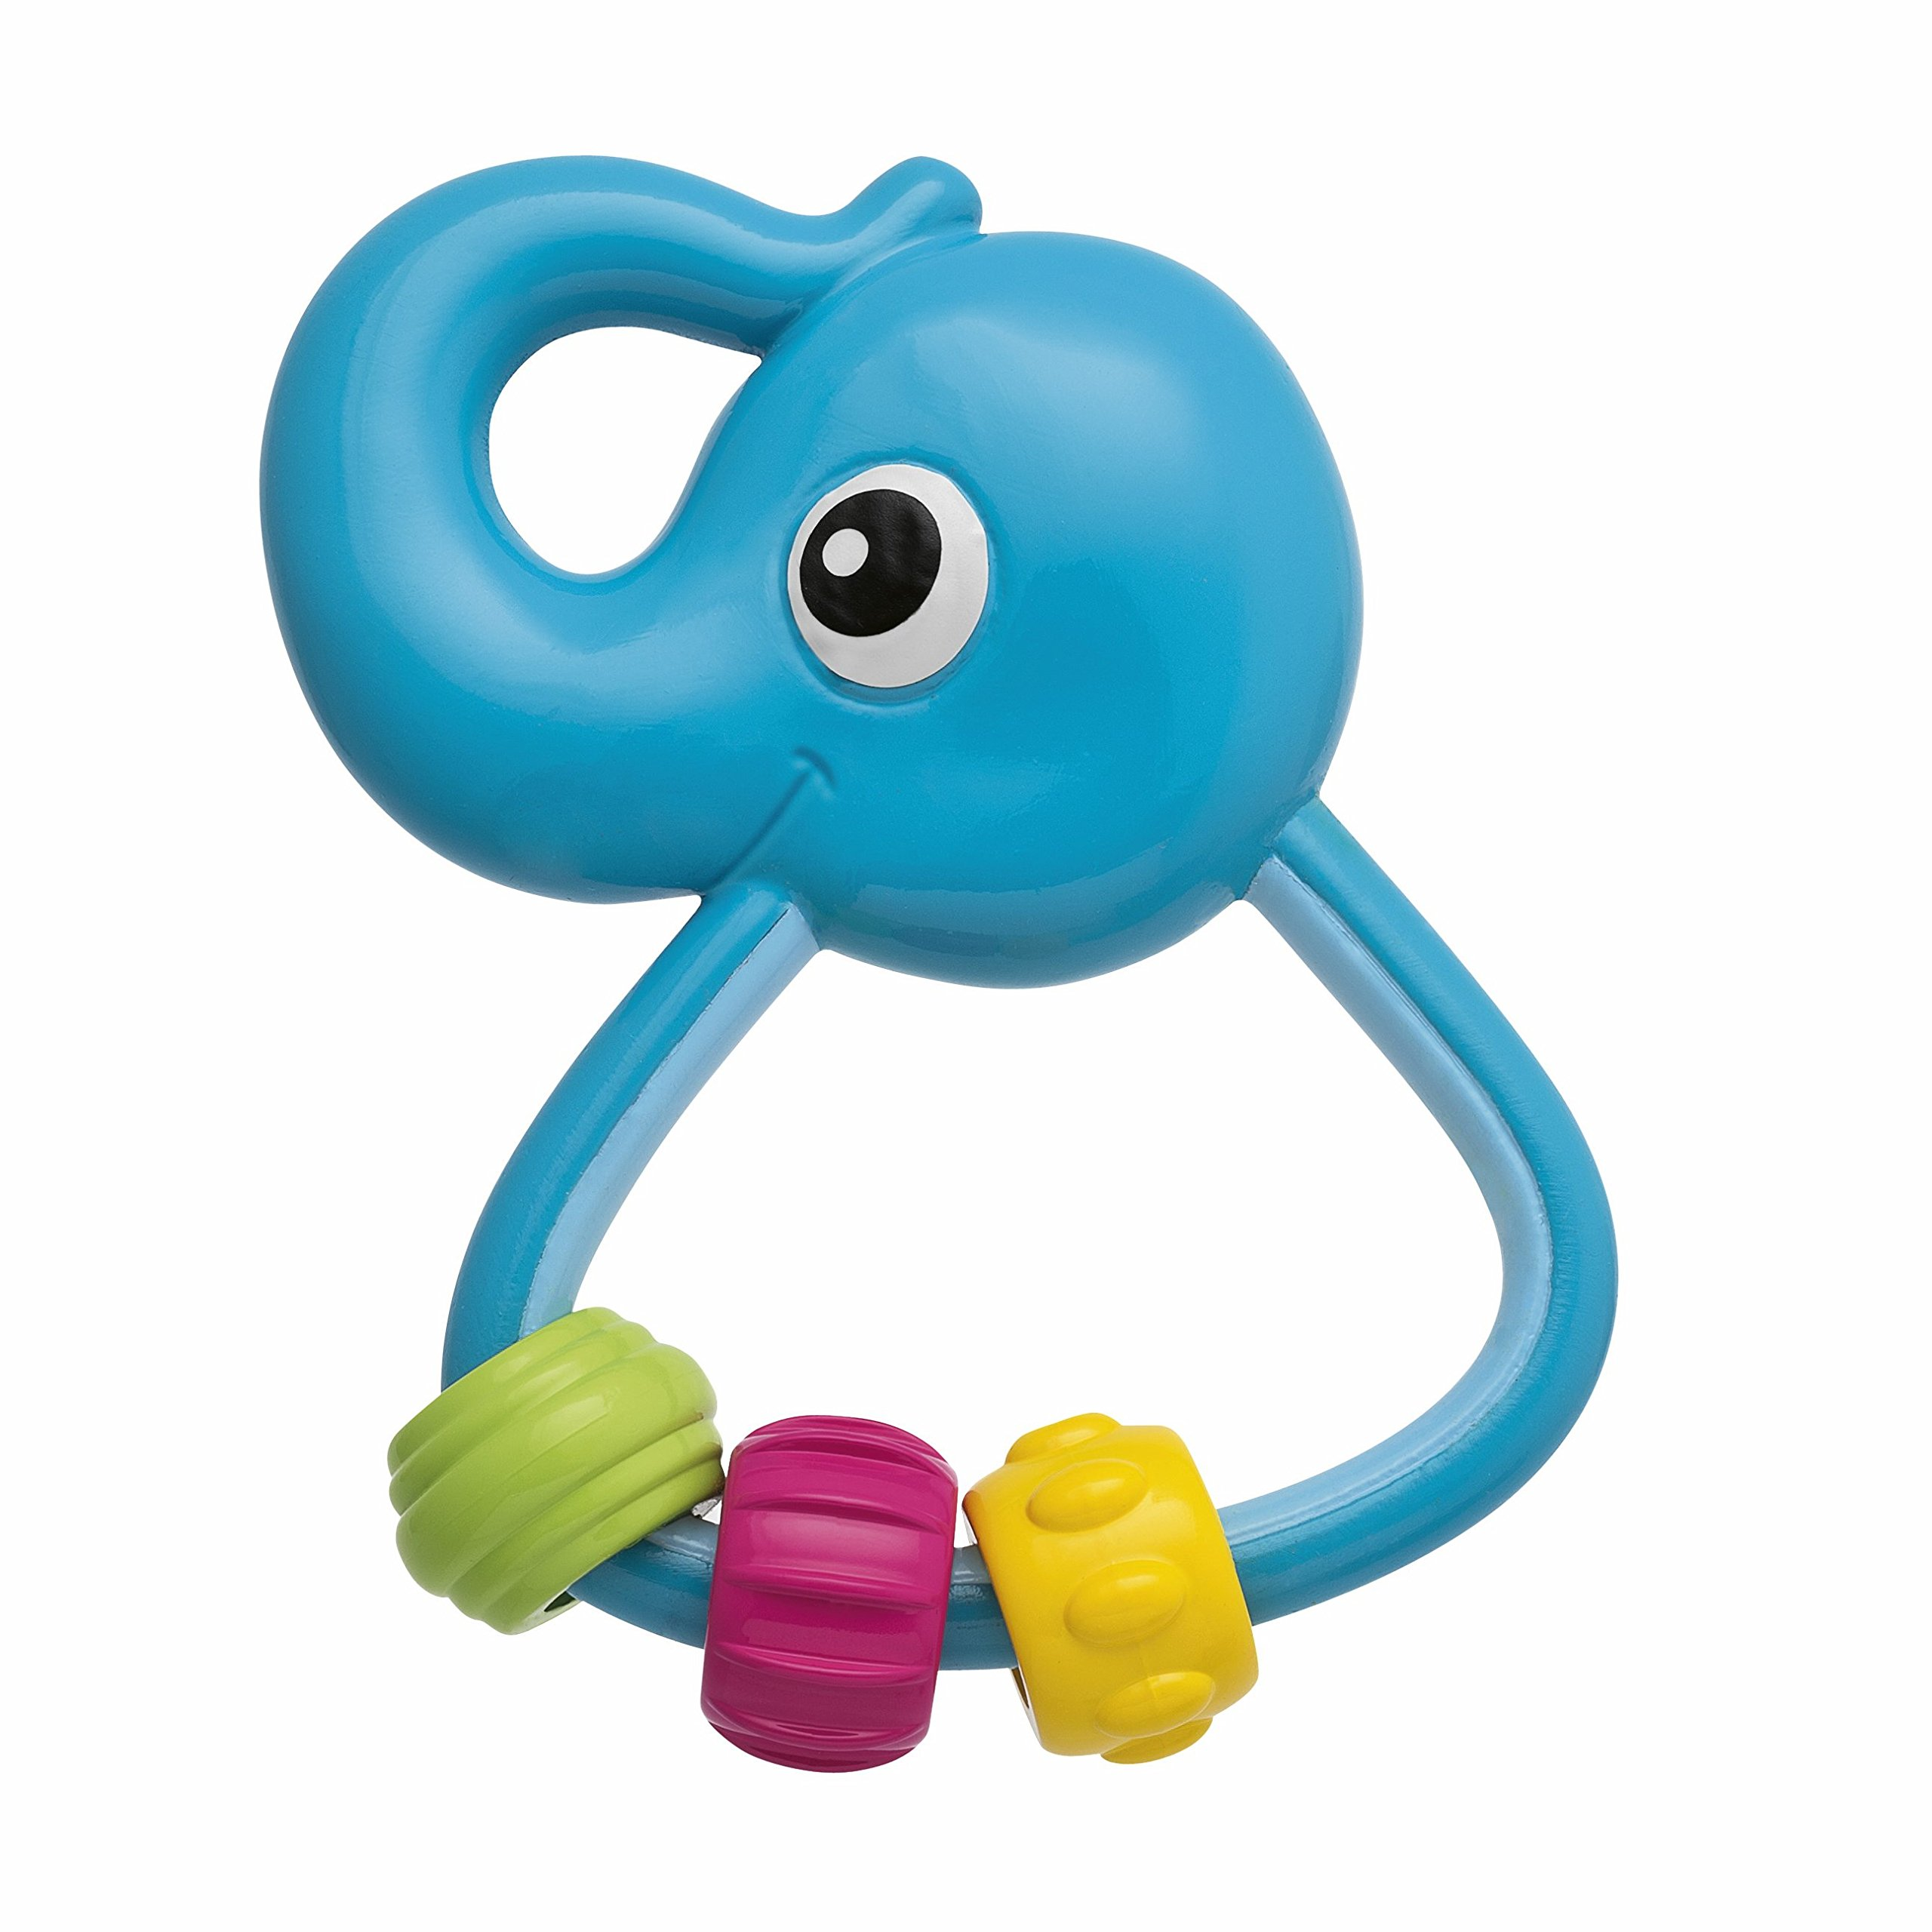 Chicco Baby Senses Elephant Rattle